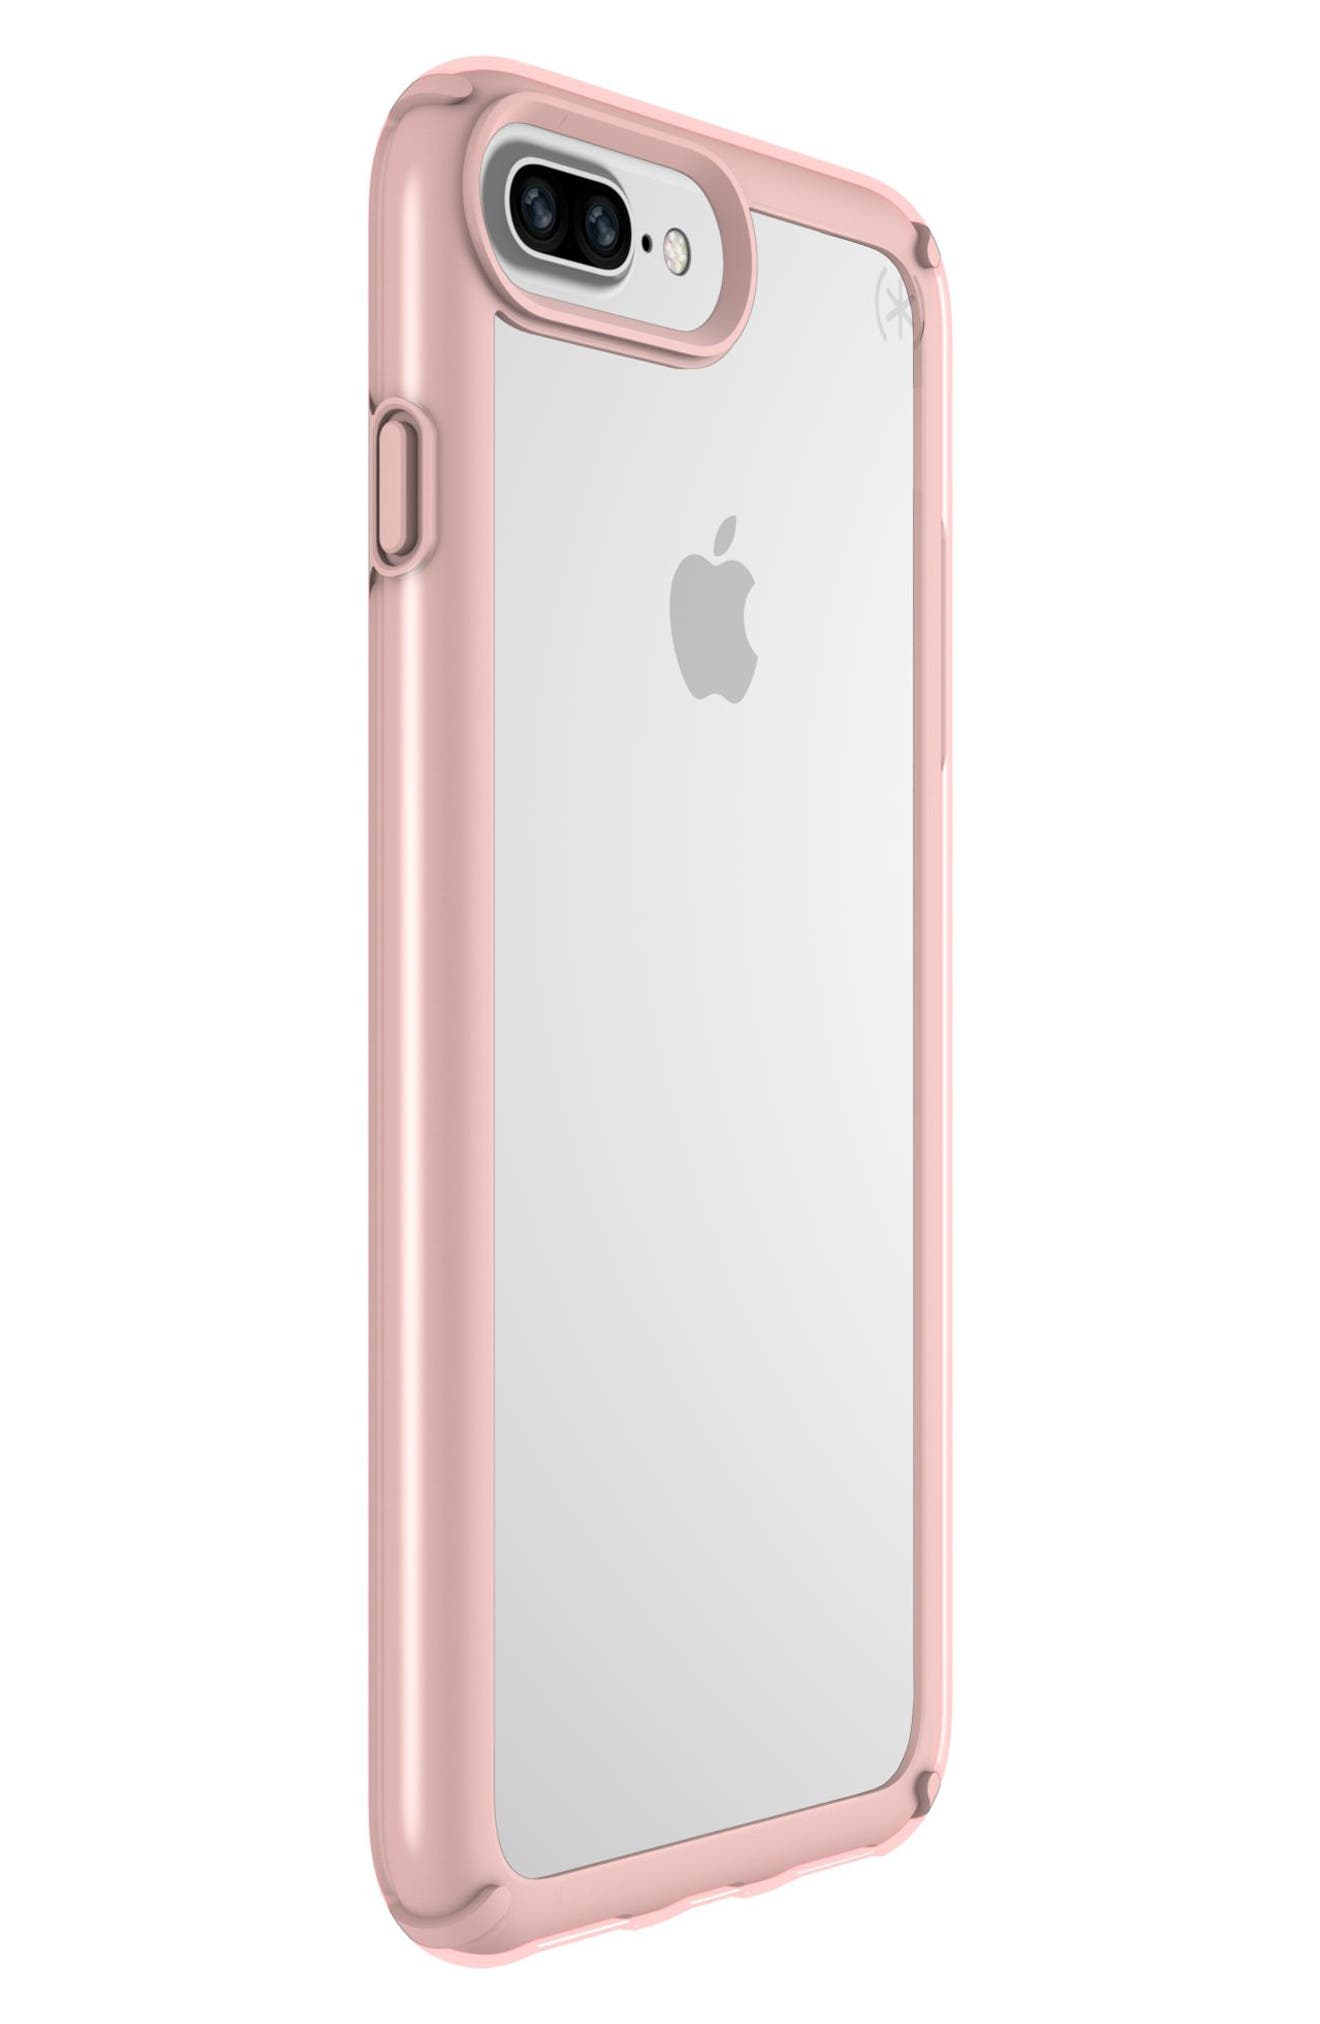 iPhone 6/6s/7/8 Plus Case,                             Alternate thumbnail 6, color,                             CLEAR/ ROSE GOLD